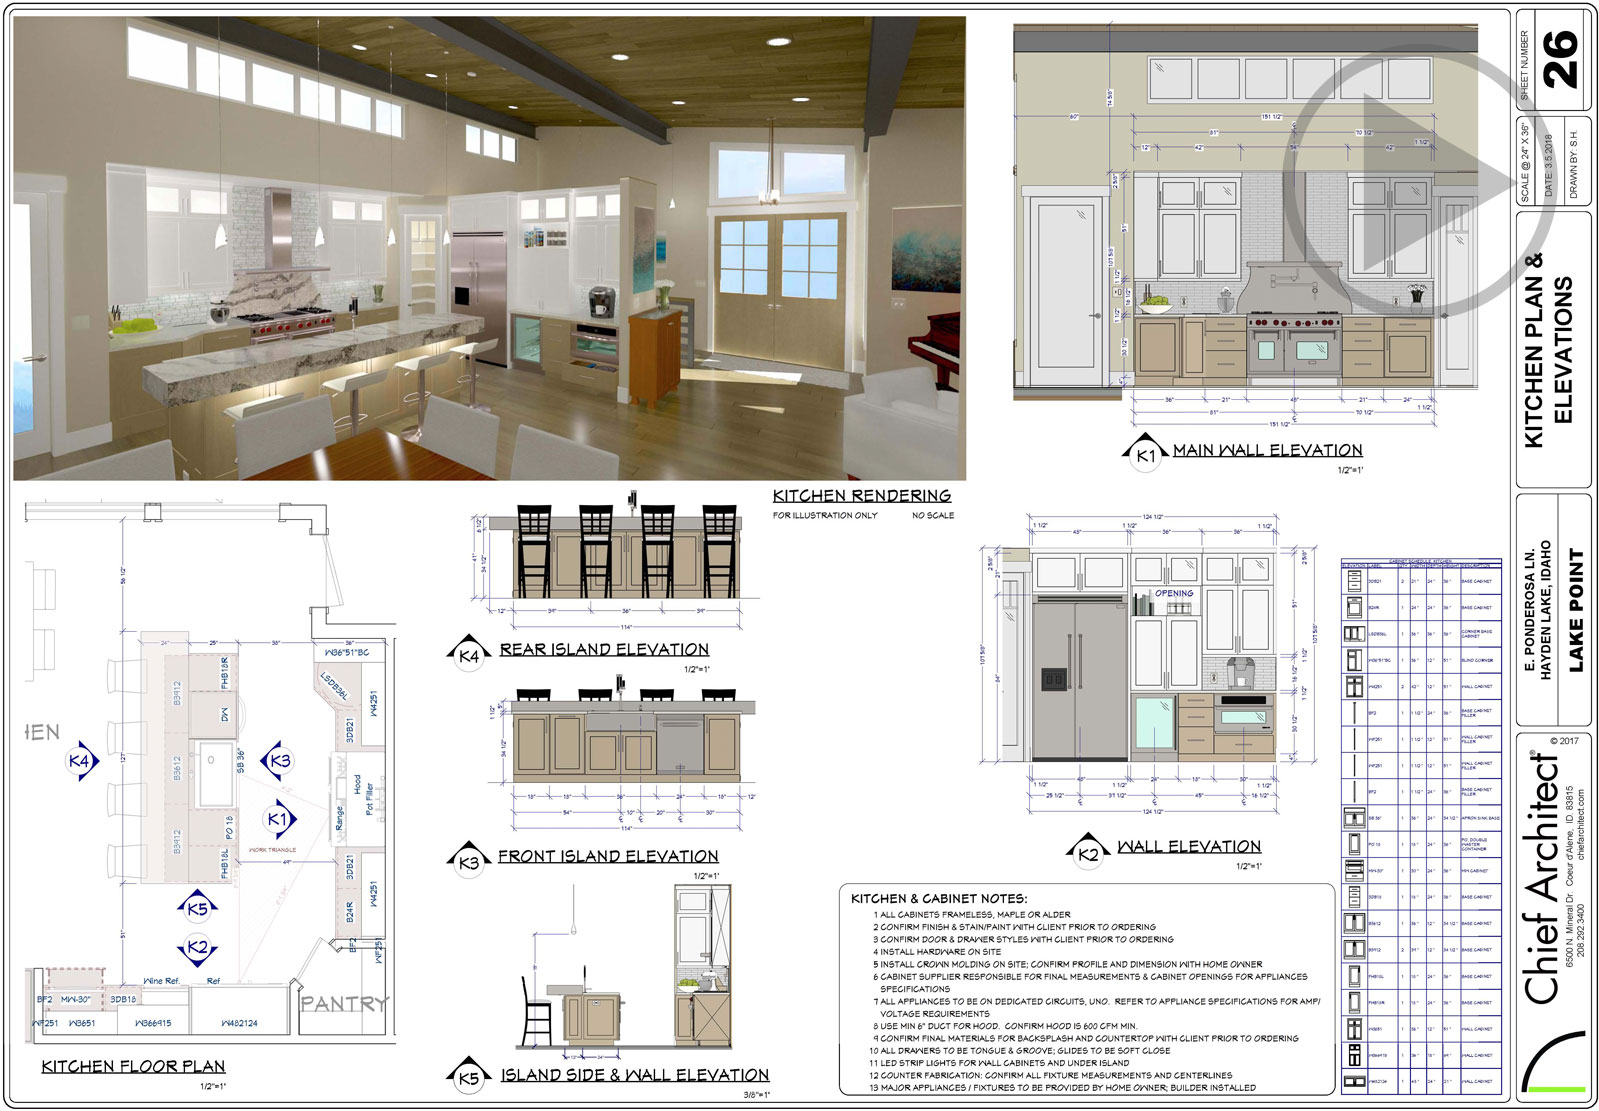 Kitchen design plan set with a floor plan, wall elevations, 3D rendering and cabinet schedule